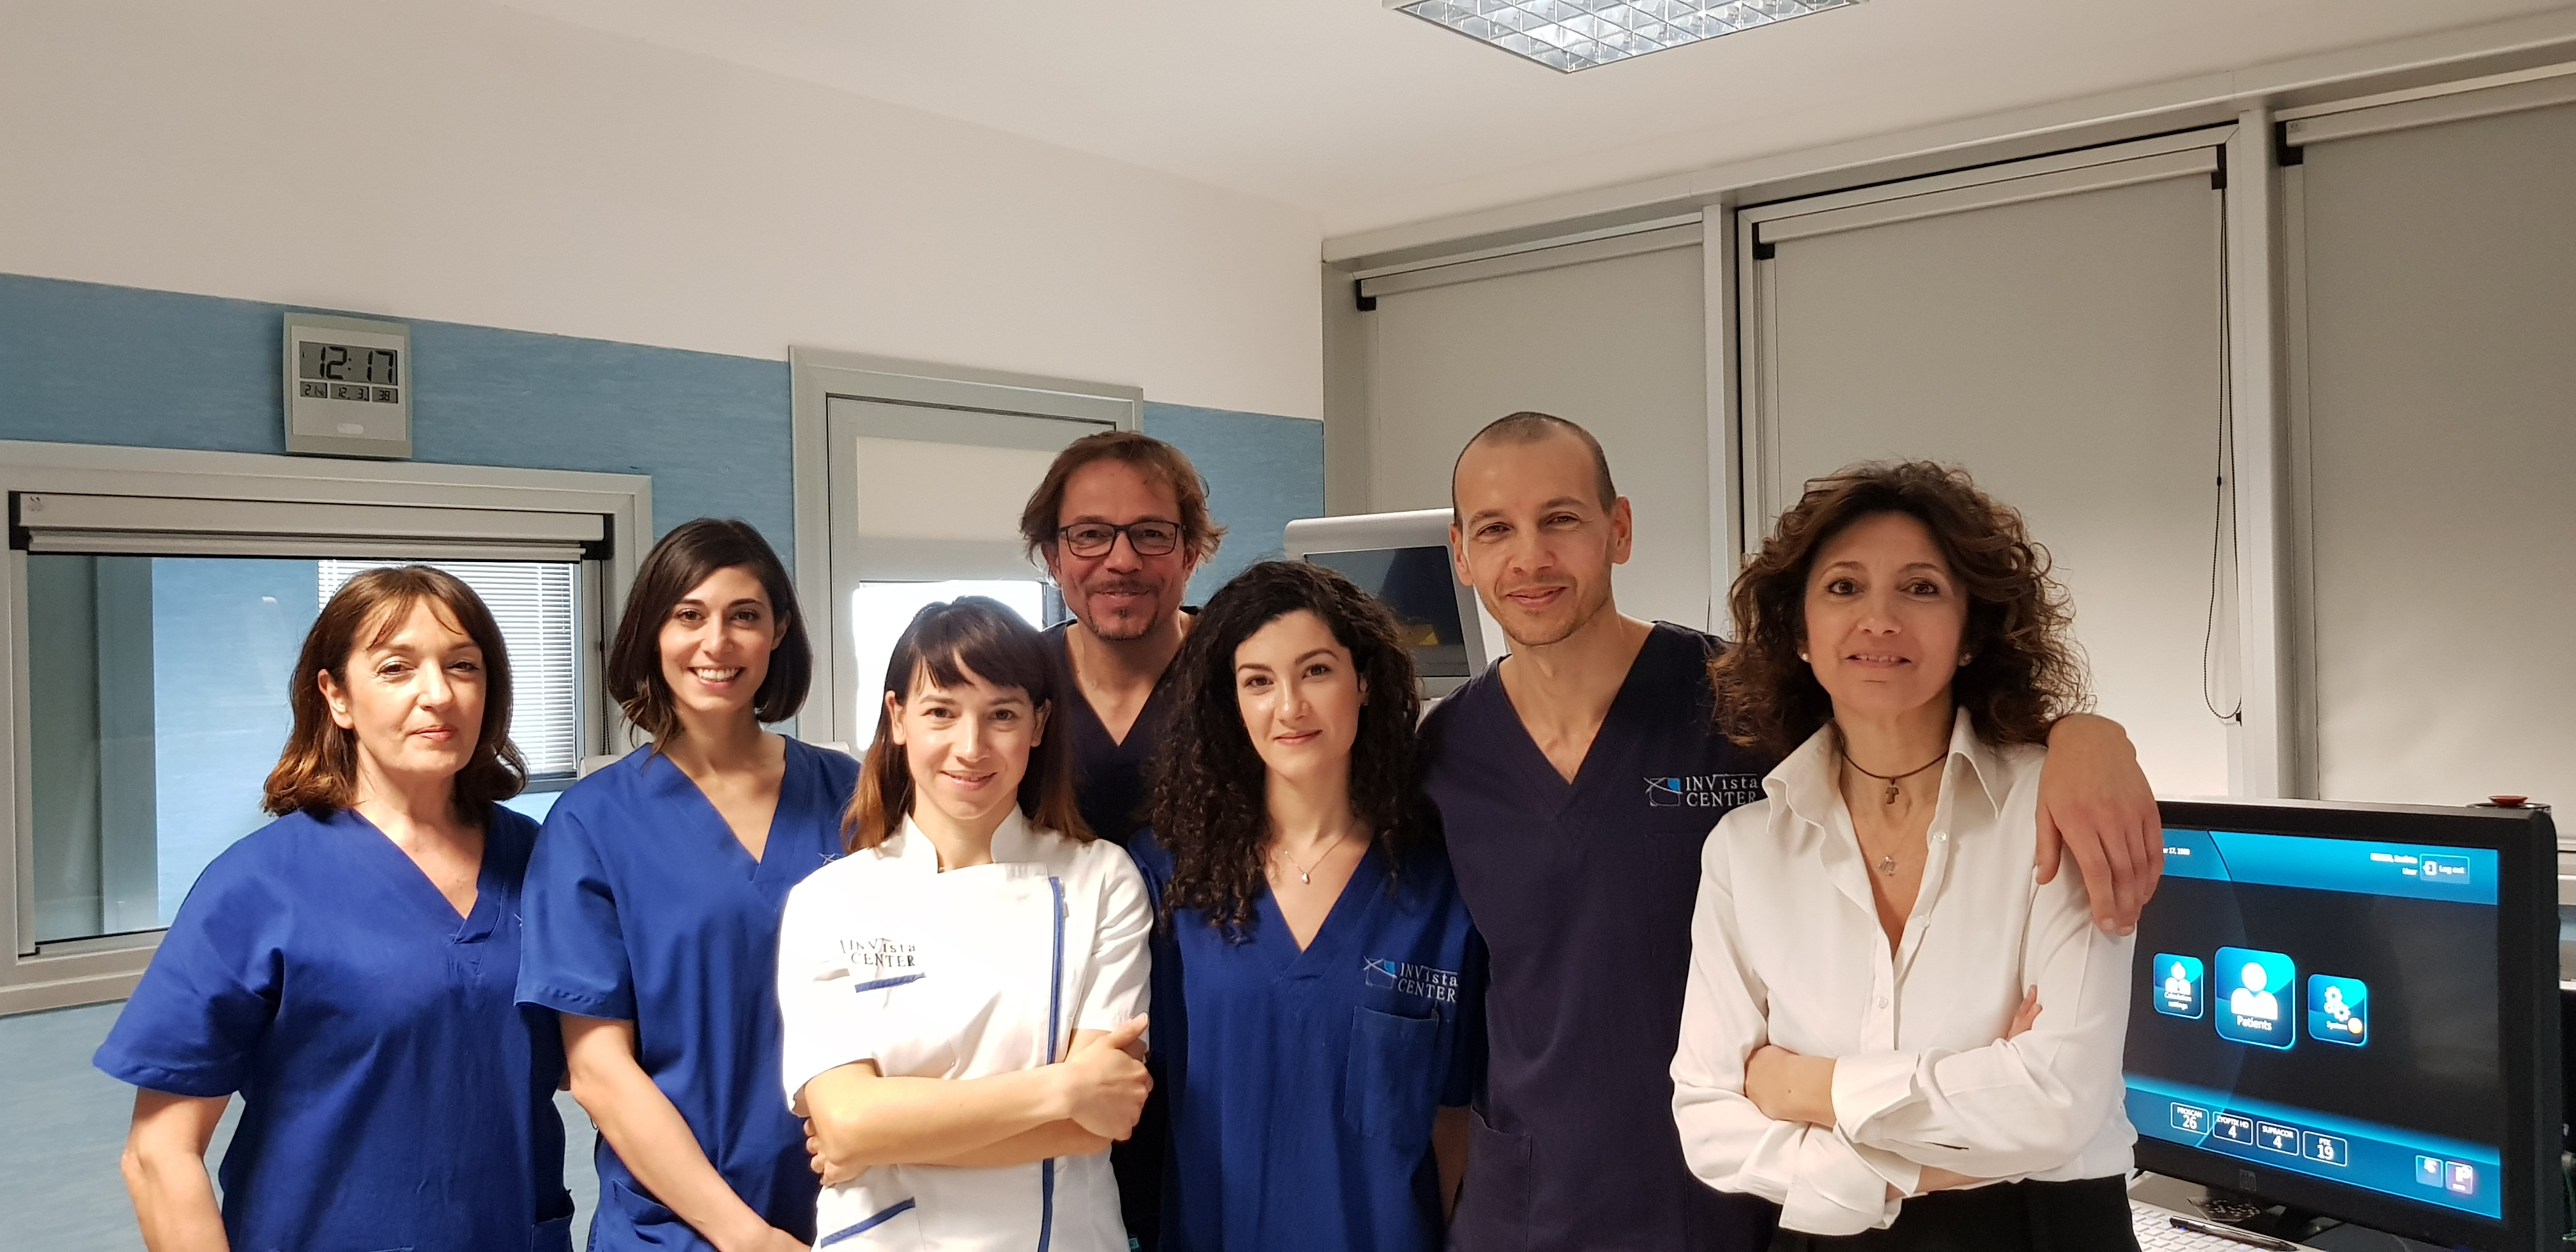 Staff centro oculistico Invista Center